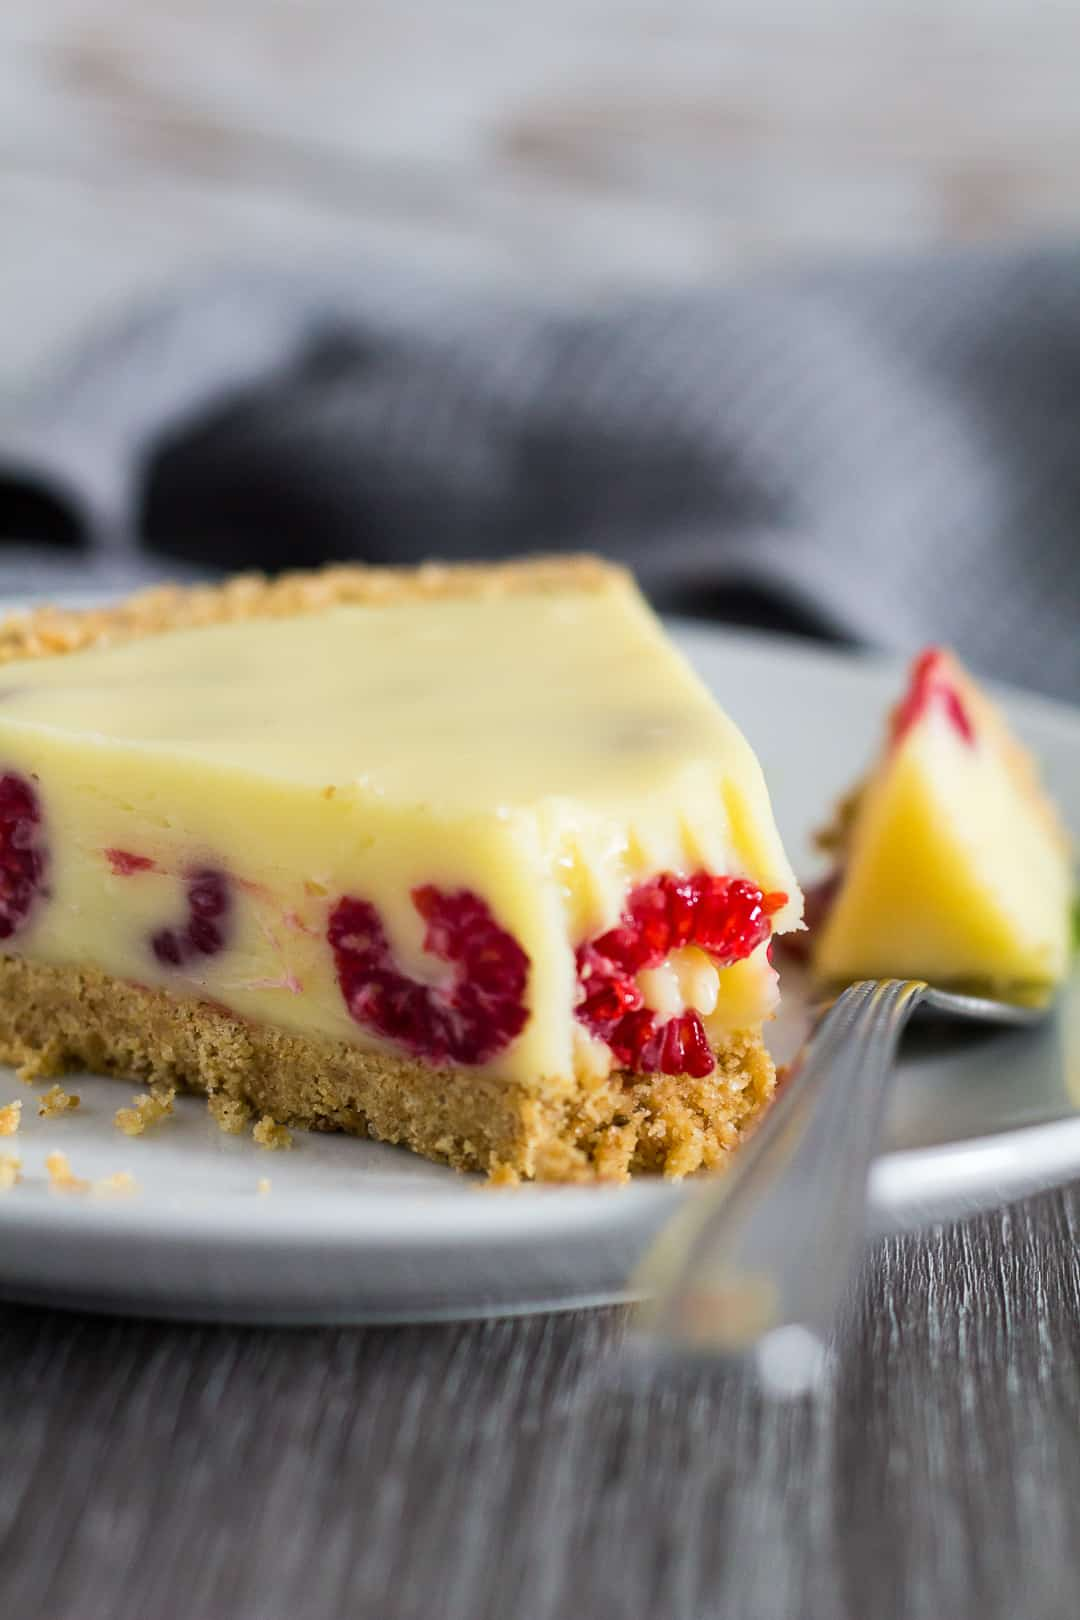 A slice of White Chocolate Raspberry Tart served on white plate with fork.